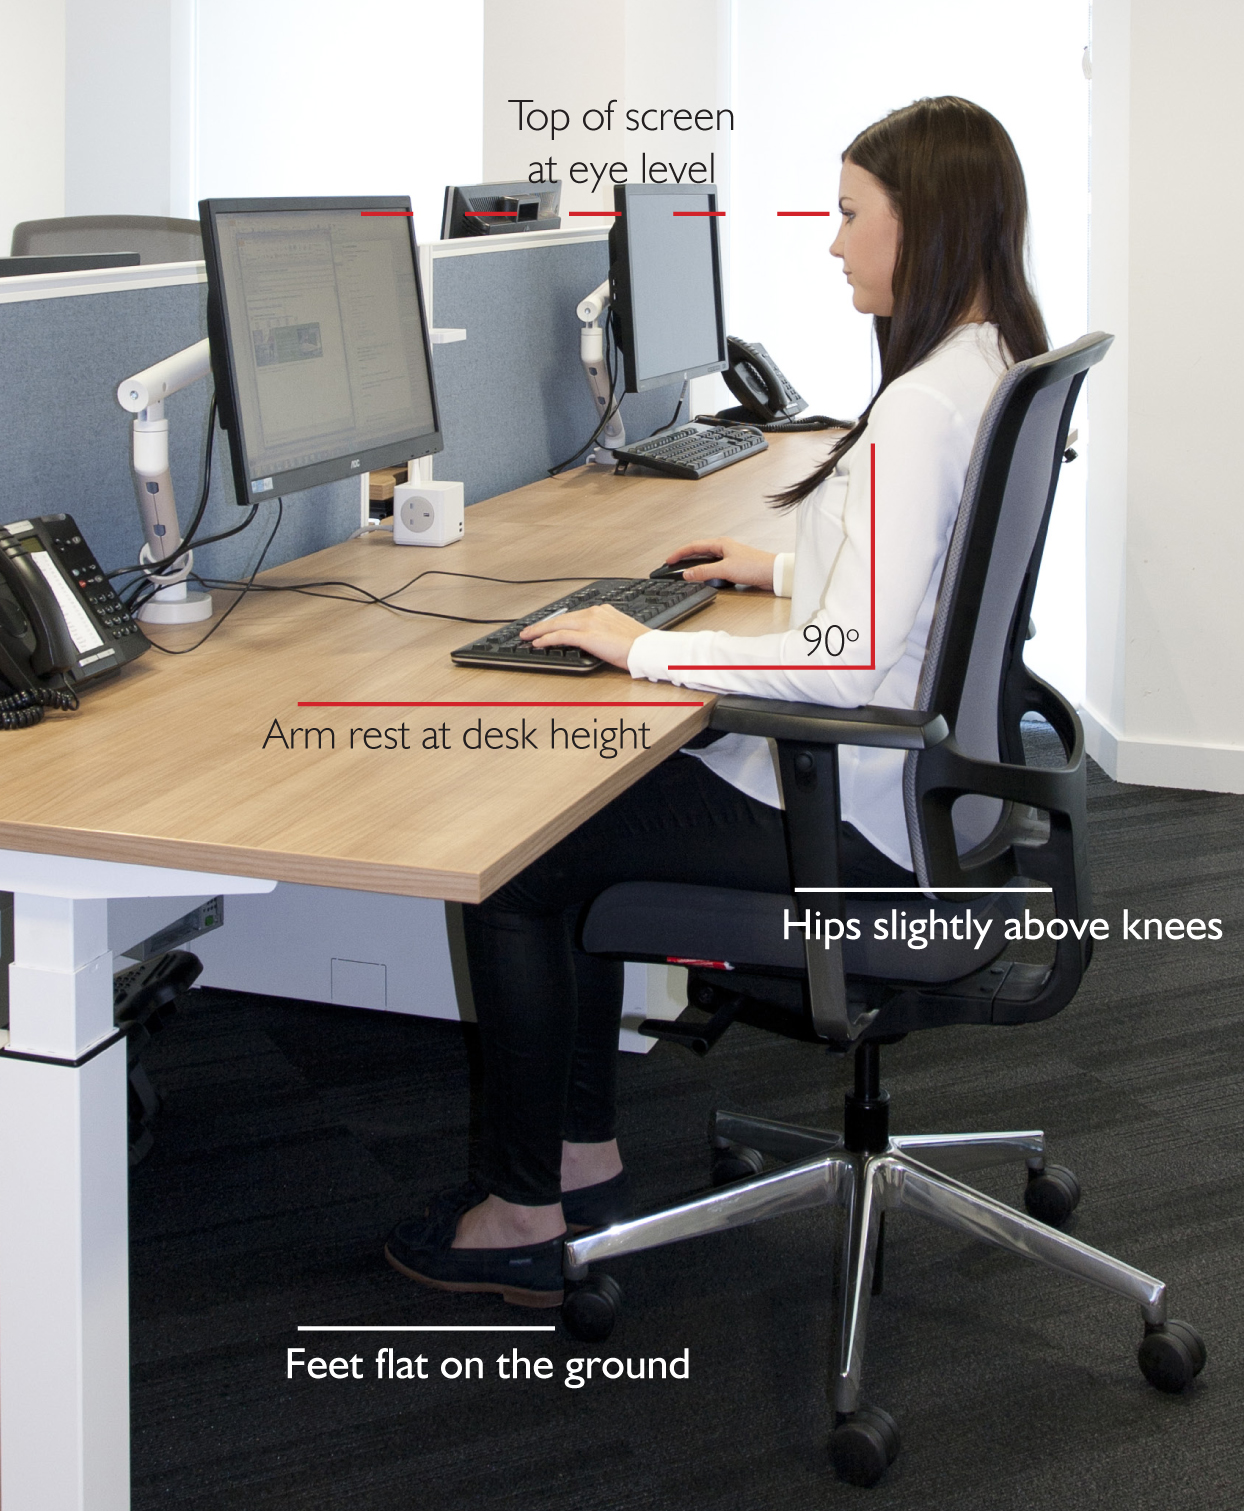 woman correcting seated desk height for better posture and ergonomics